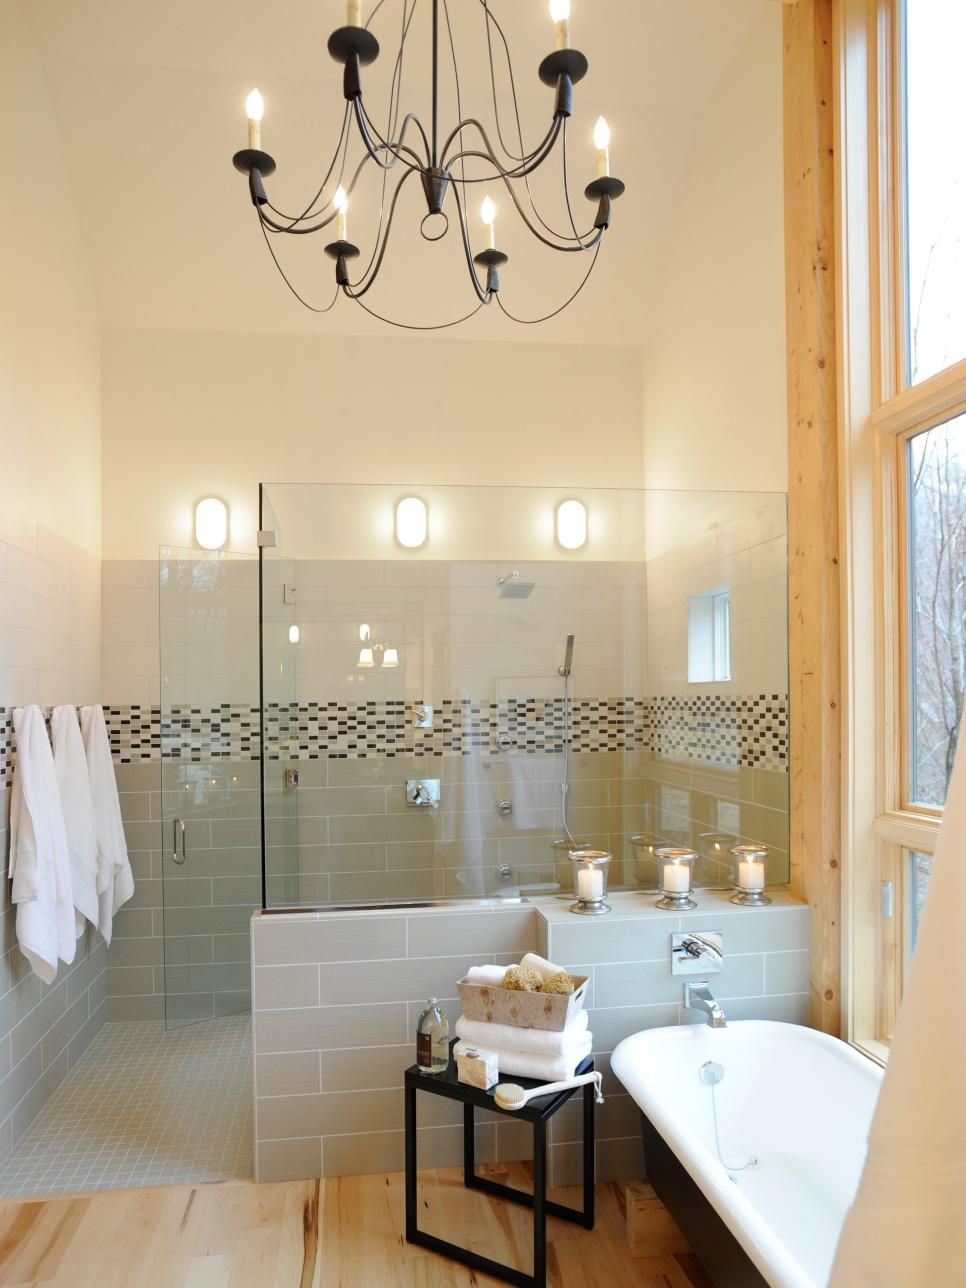 13 Dreamy Bathroom Lighting Ideas Bathroom Trends Bathroom